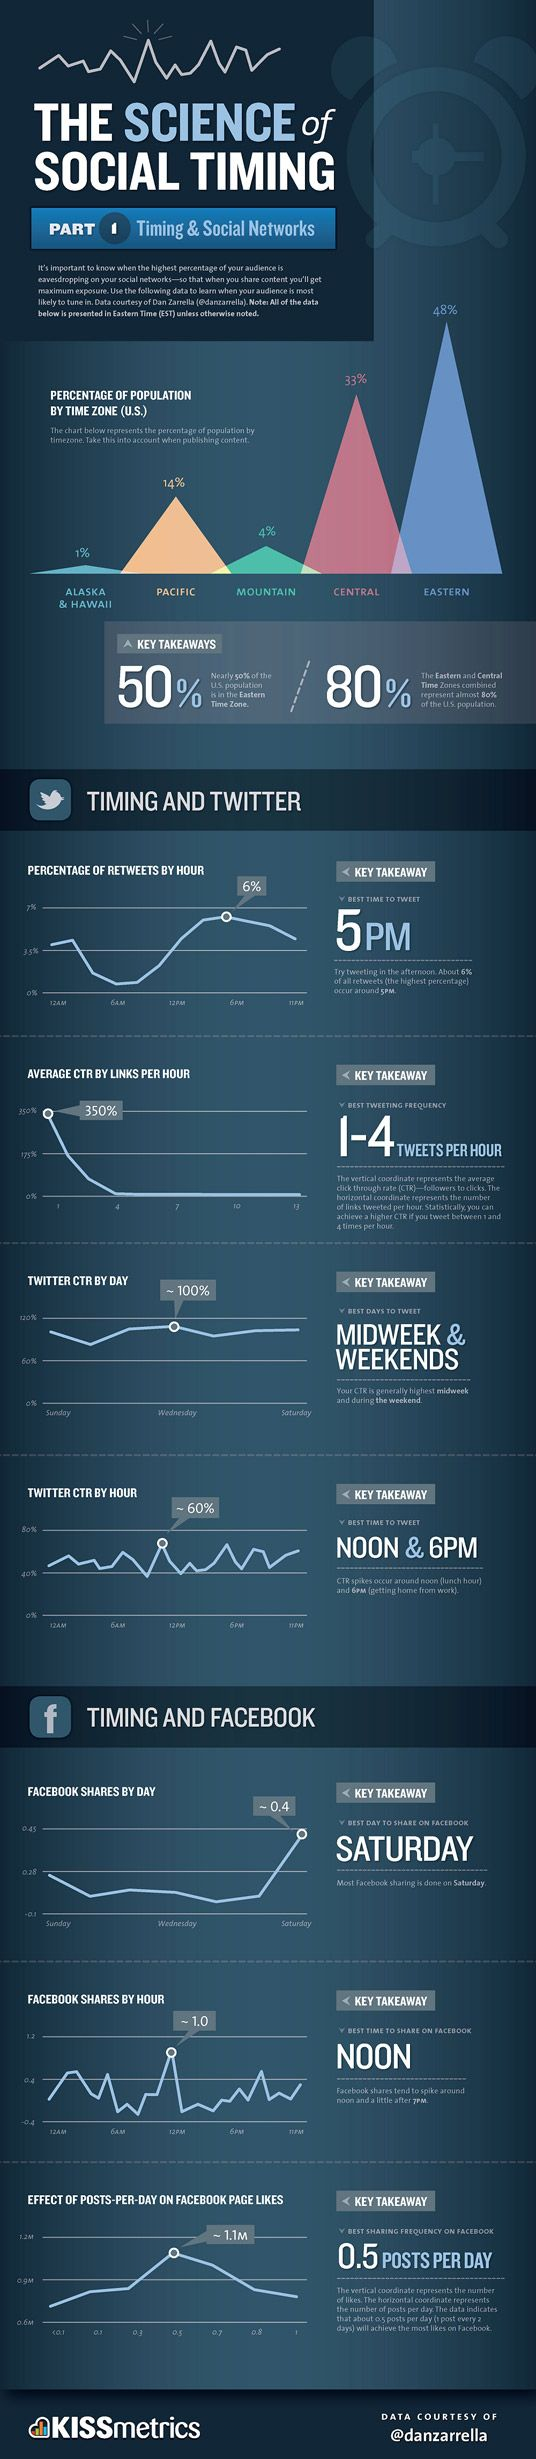 The science of social timing !